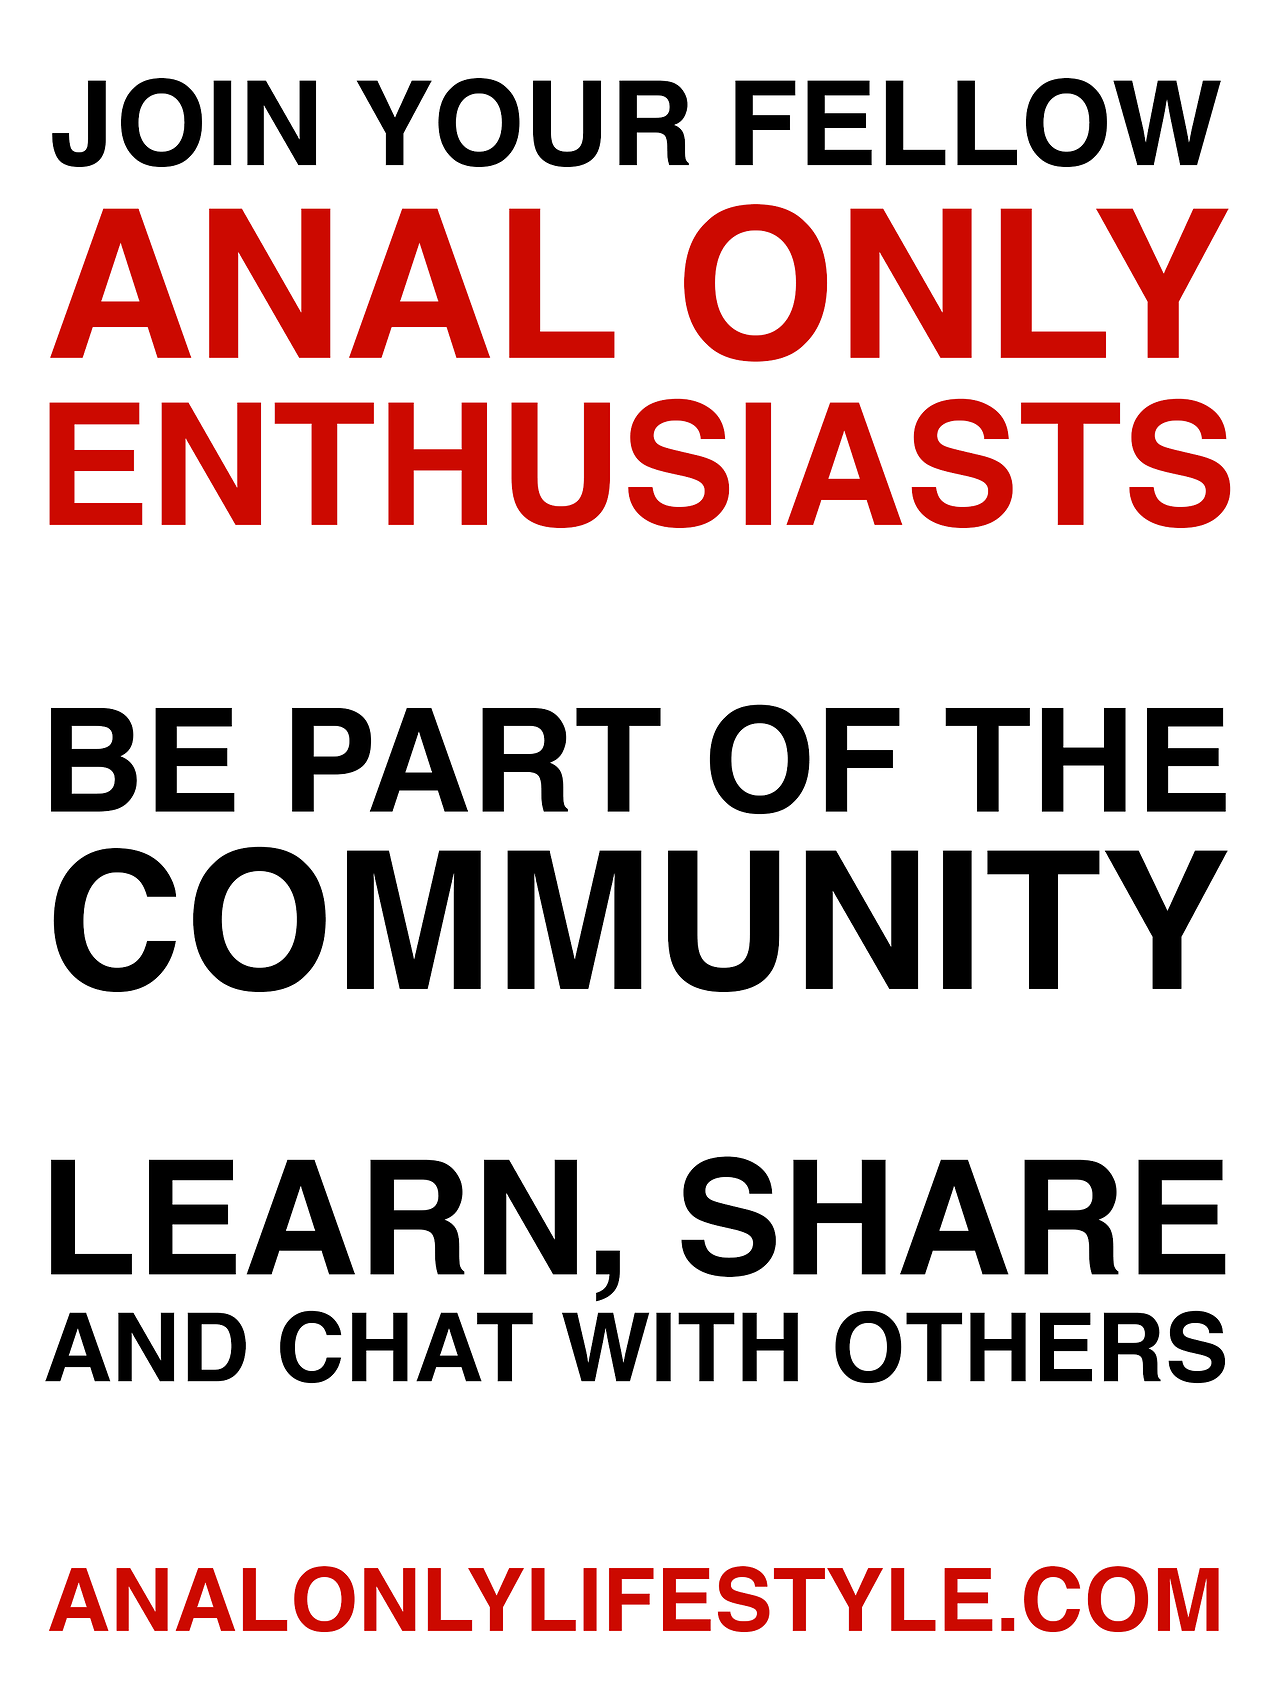 Join your fellow anal only enthusiasts. Be part of the community. Learn, share and chat with others. https://www.analonlylifestyle.com